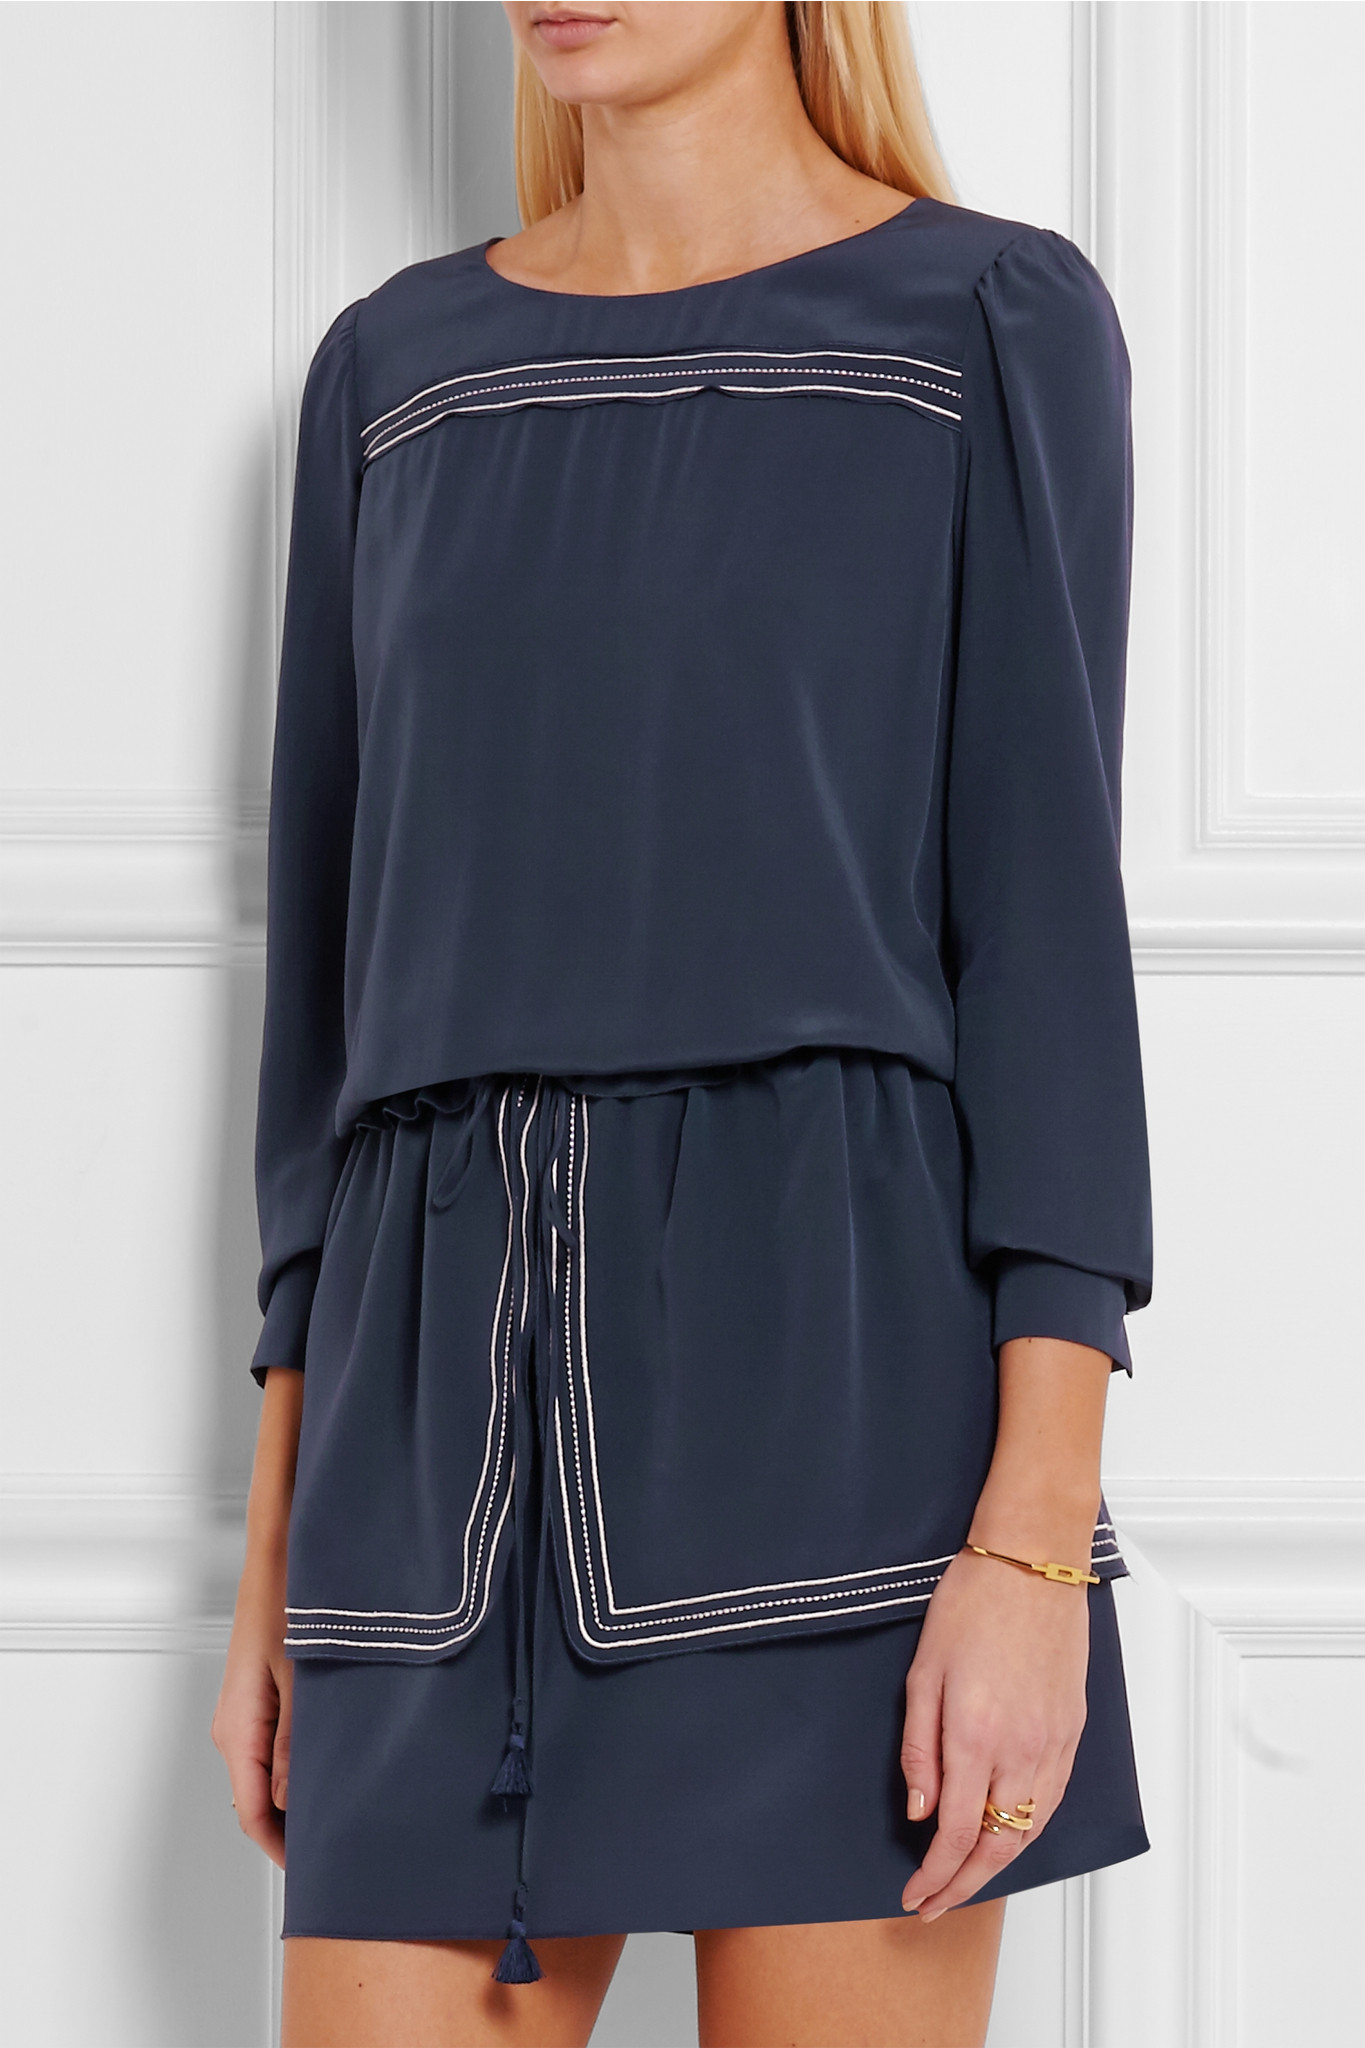 Discount Cheap Online Discount Marketable Ruffled Silk Crepe De Chine Dress - Navy See By Chloé Free Shipping 2018 Free Shipping 2018 New M35kTf3P